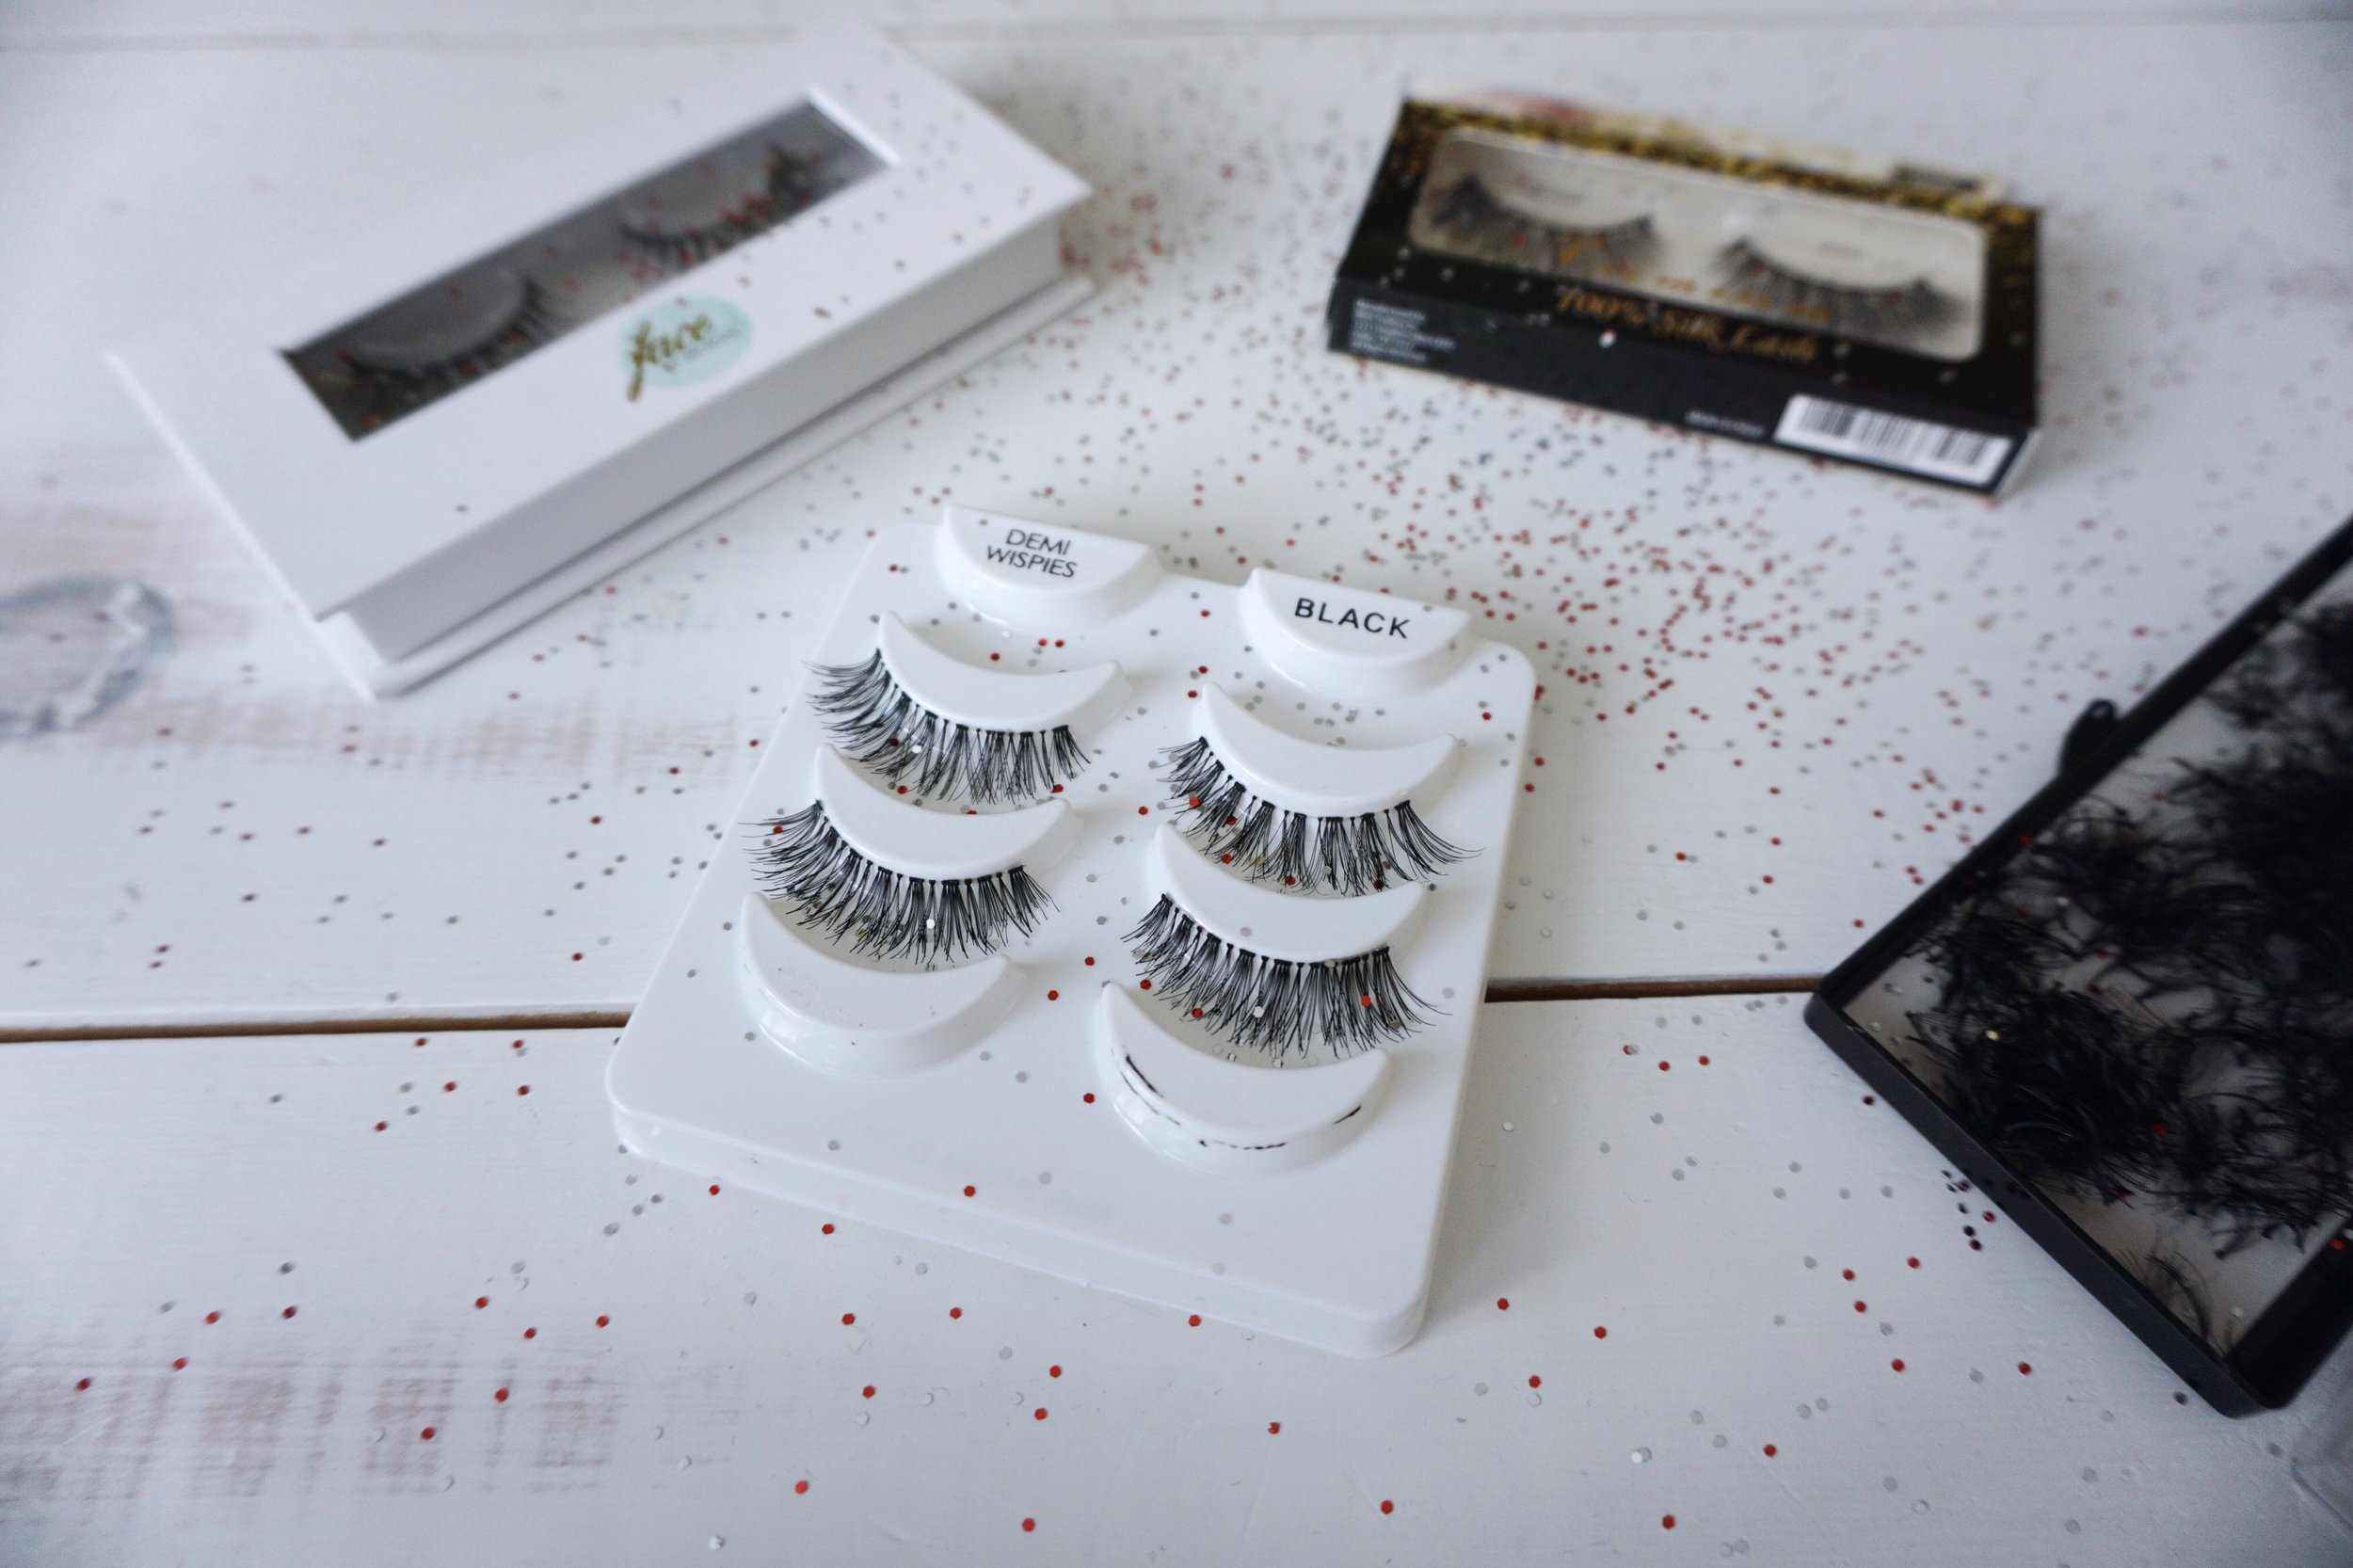 Best Cruelty-Free False Lashes (Ardell Demi Wispies) - Artistry by Jacquie, Ottawa Makeup Artist